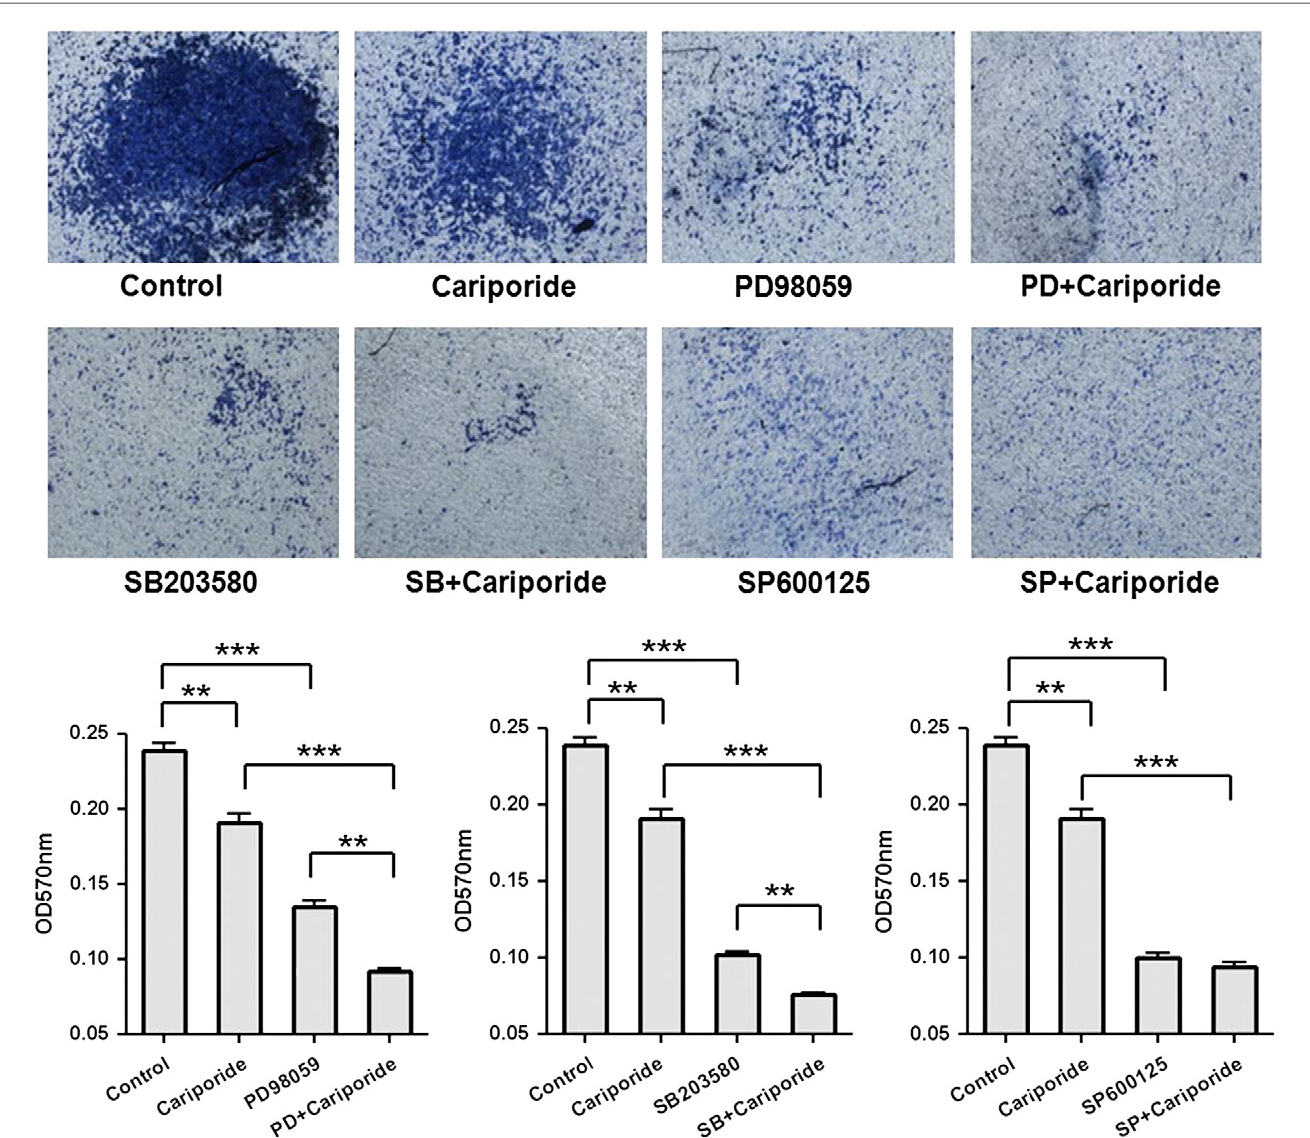 Fig. 6 – Effects of Cariporide and MAPK inhibitors on invasiveness of MDA-MB-231 cells. MDA-MB-231 cells were treated with Cariporide, MAPK inhibitors (ERK1/2 inhibitor PD98059, p38 MAPK inhibitor SB203580 and JNK inhibitor SP600125), and combination of Cariporide and MAPK inhibitors, respectively, as shown in the figure. The invasiveness of MDA-MB-231 cells with different treatments was tested by cell invasion assay for 12 h, 37 °C. The data represent the mean±SD of three independent experiments. **P<0.01, ***P<0.001.